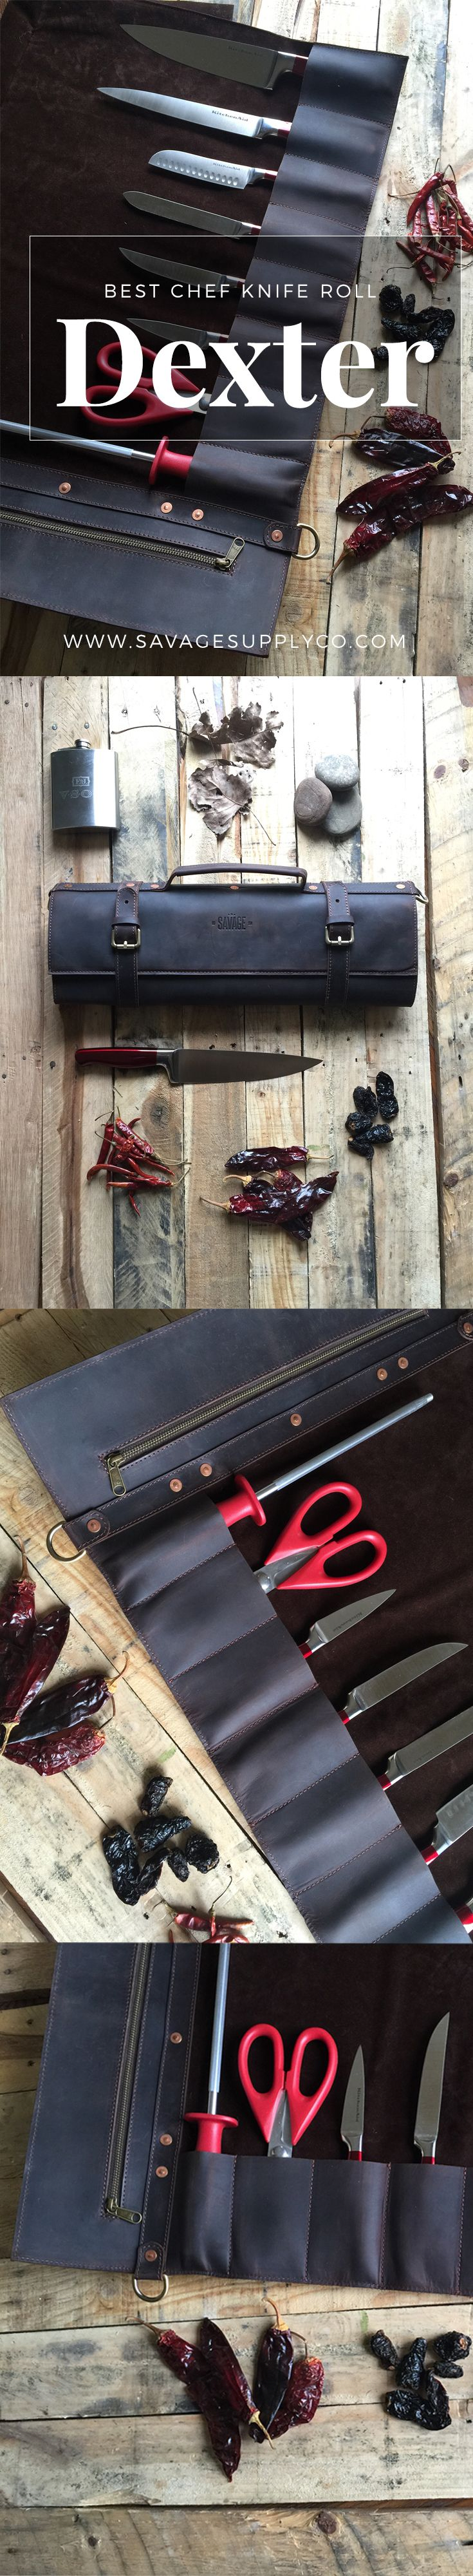 best knives images on pinterest chef knives tools and chef knife